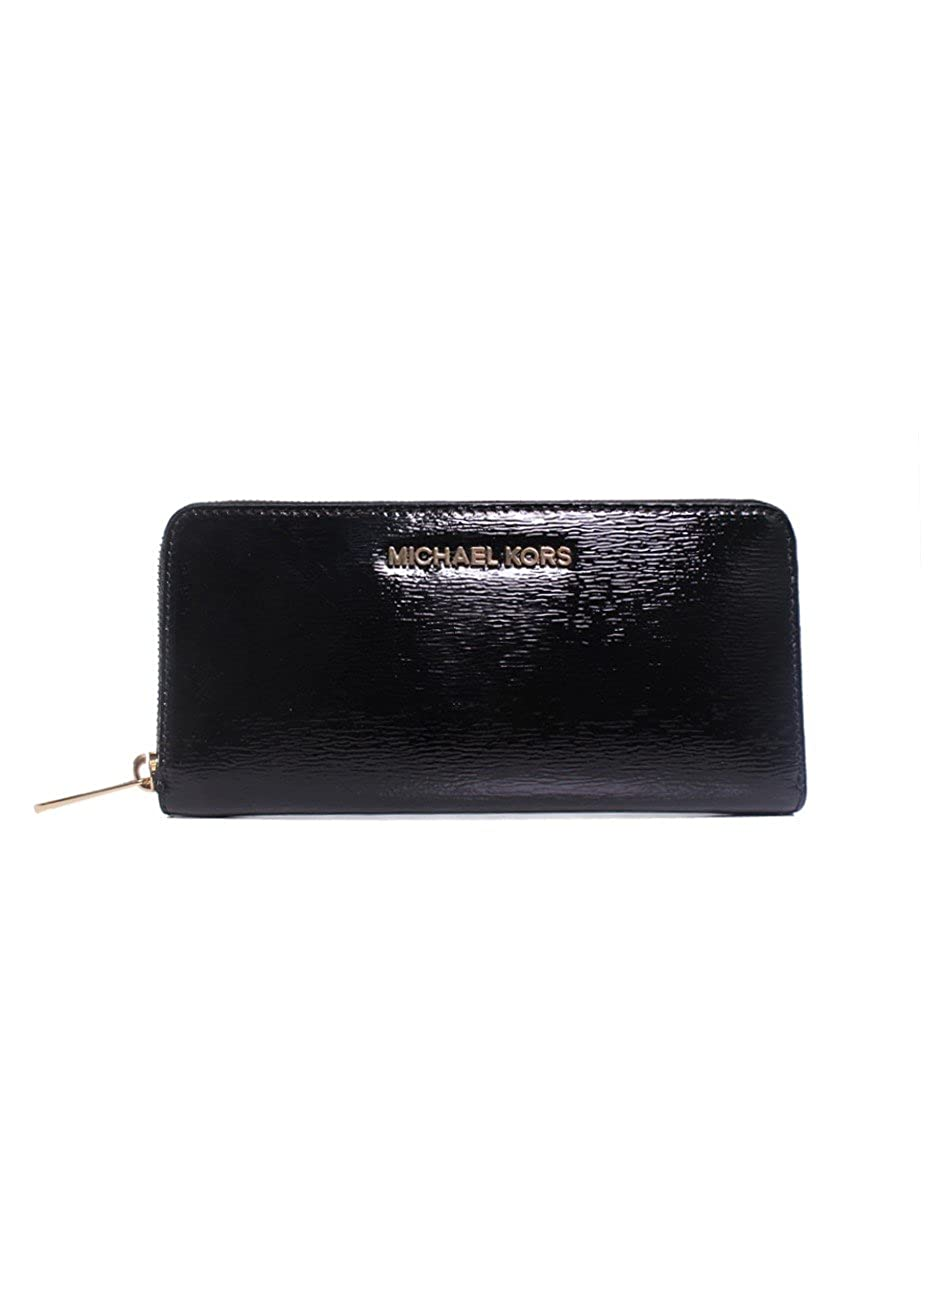 481a62e8e4fe Michael Kors Jet Set Travel Black Patent Leather Zip Around Continental  Accordion Wallet: Handbags: Amazon.com